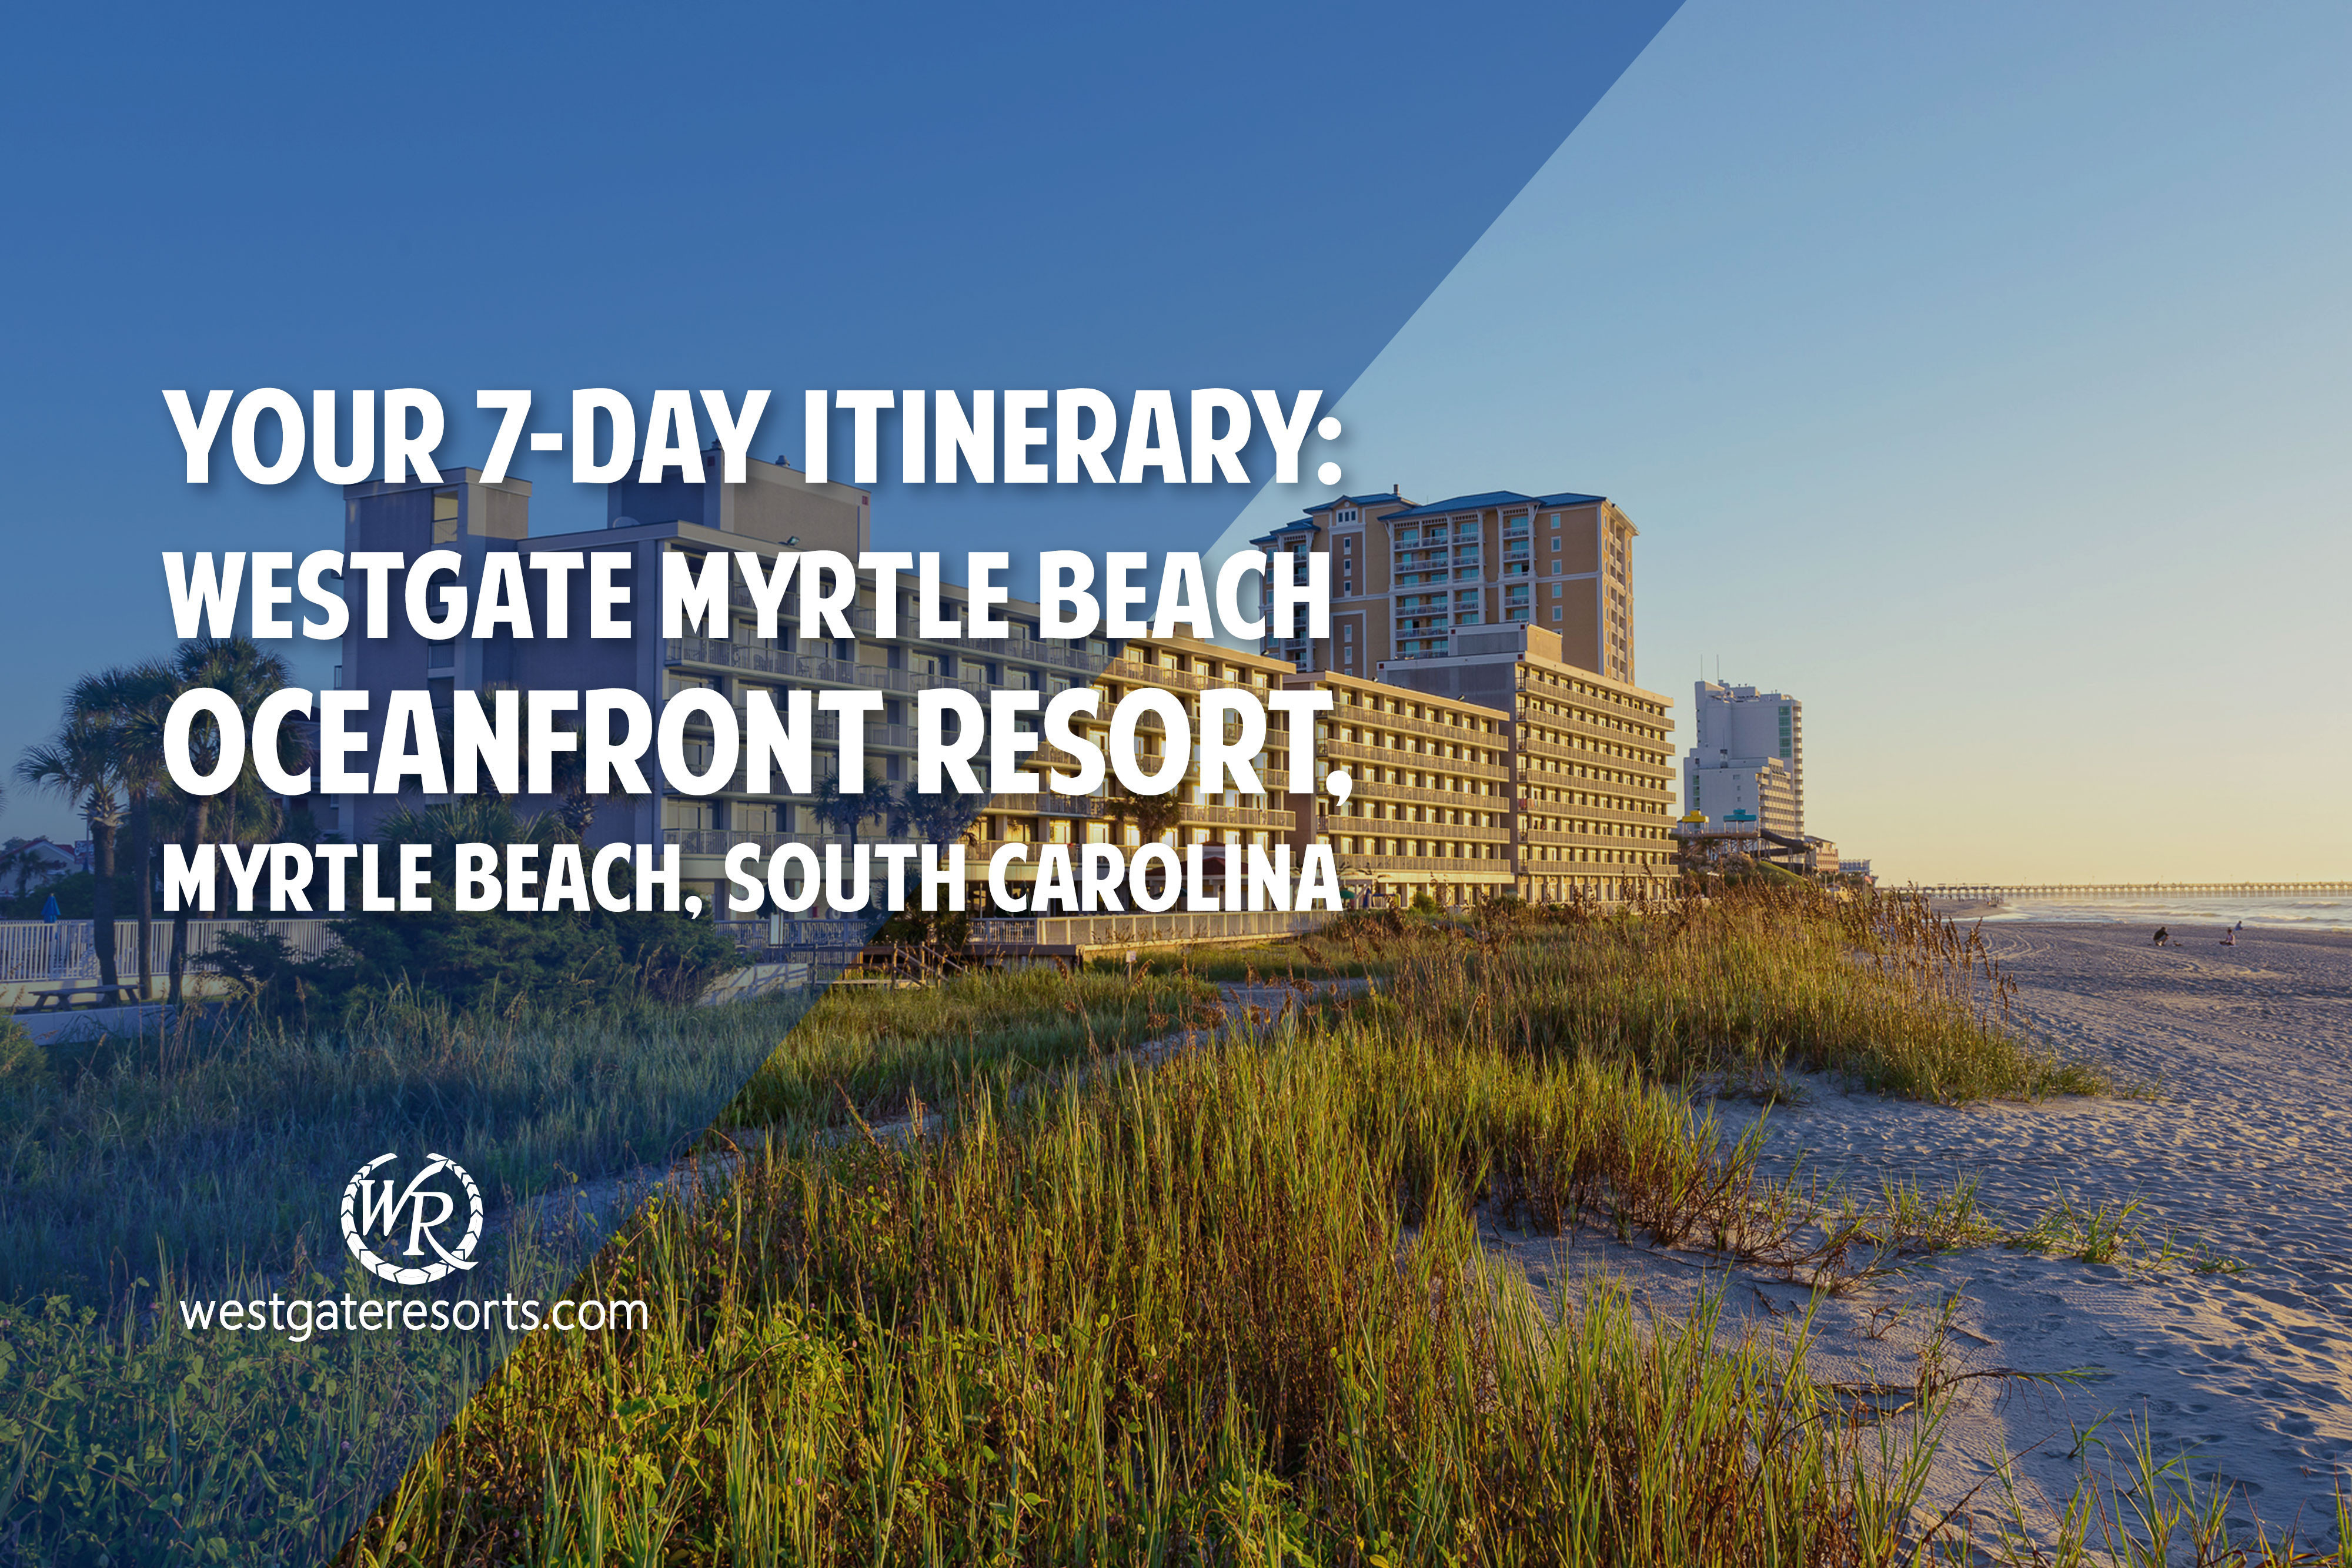 Your 7-Day Itinerary: Westgate Myrtle Beach Oceanfront Resort, Myrtle Beach, SC